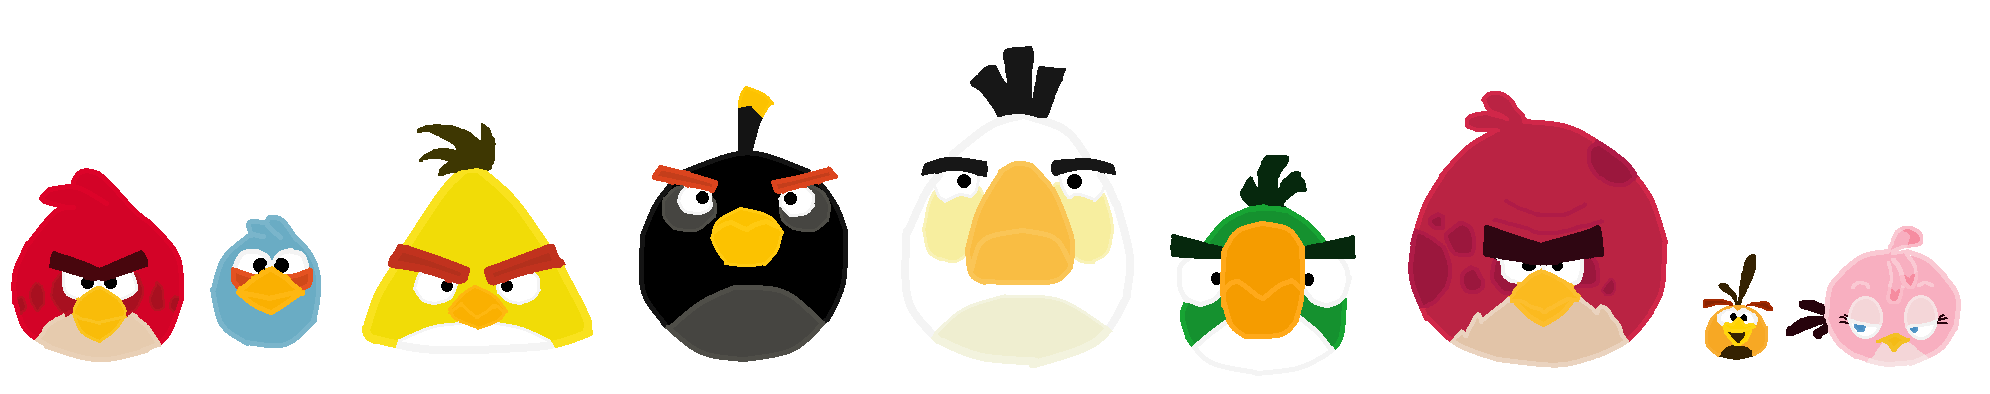 Angry birds the flock.png - Angry Birds PNG